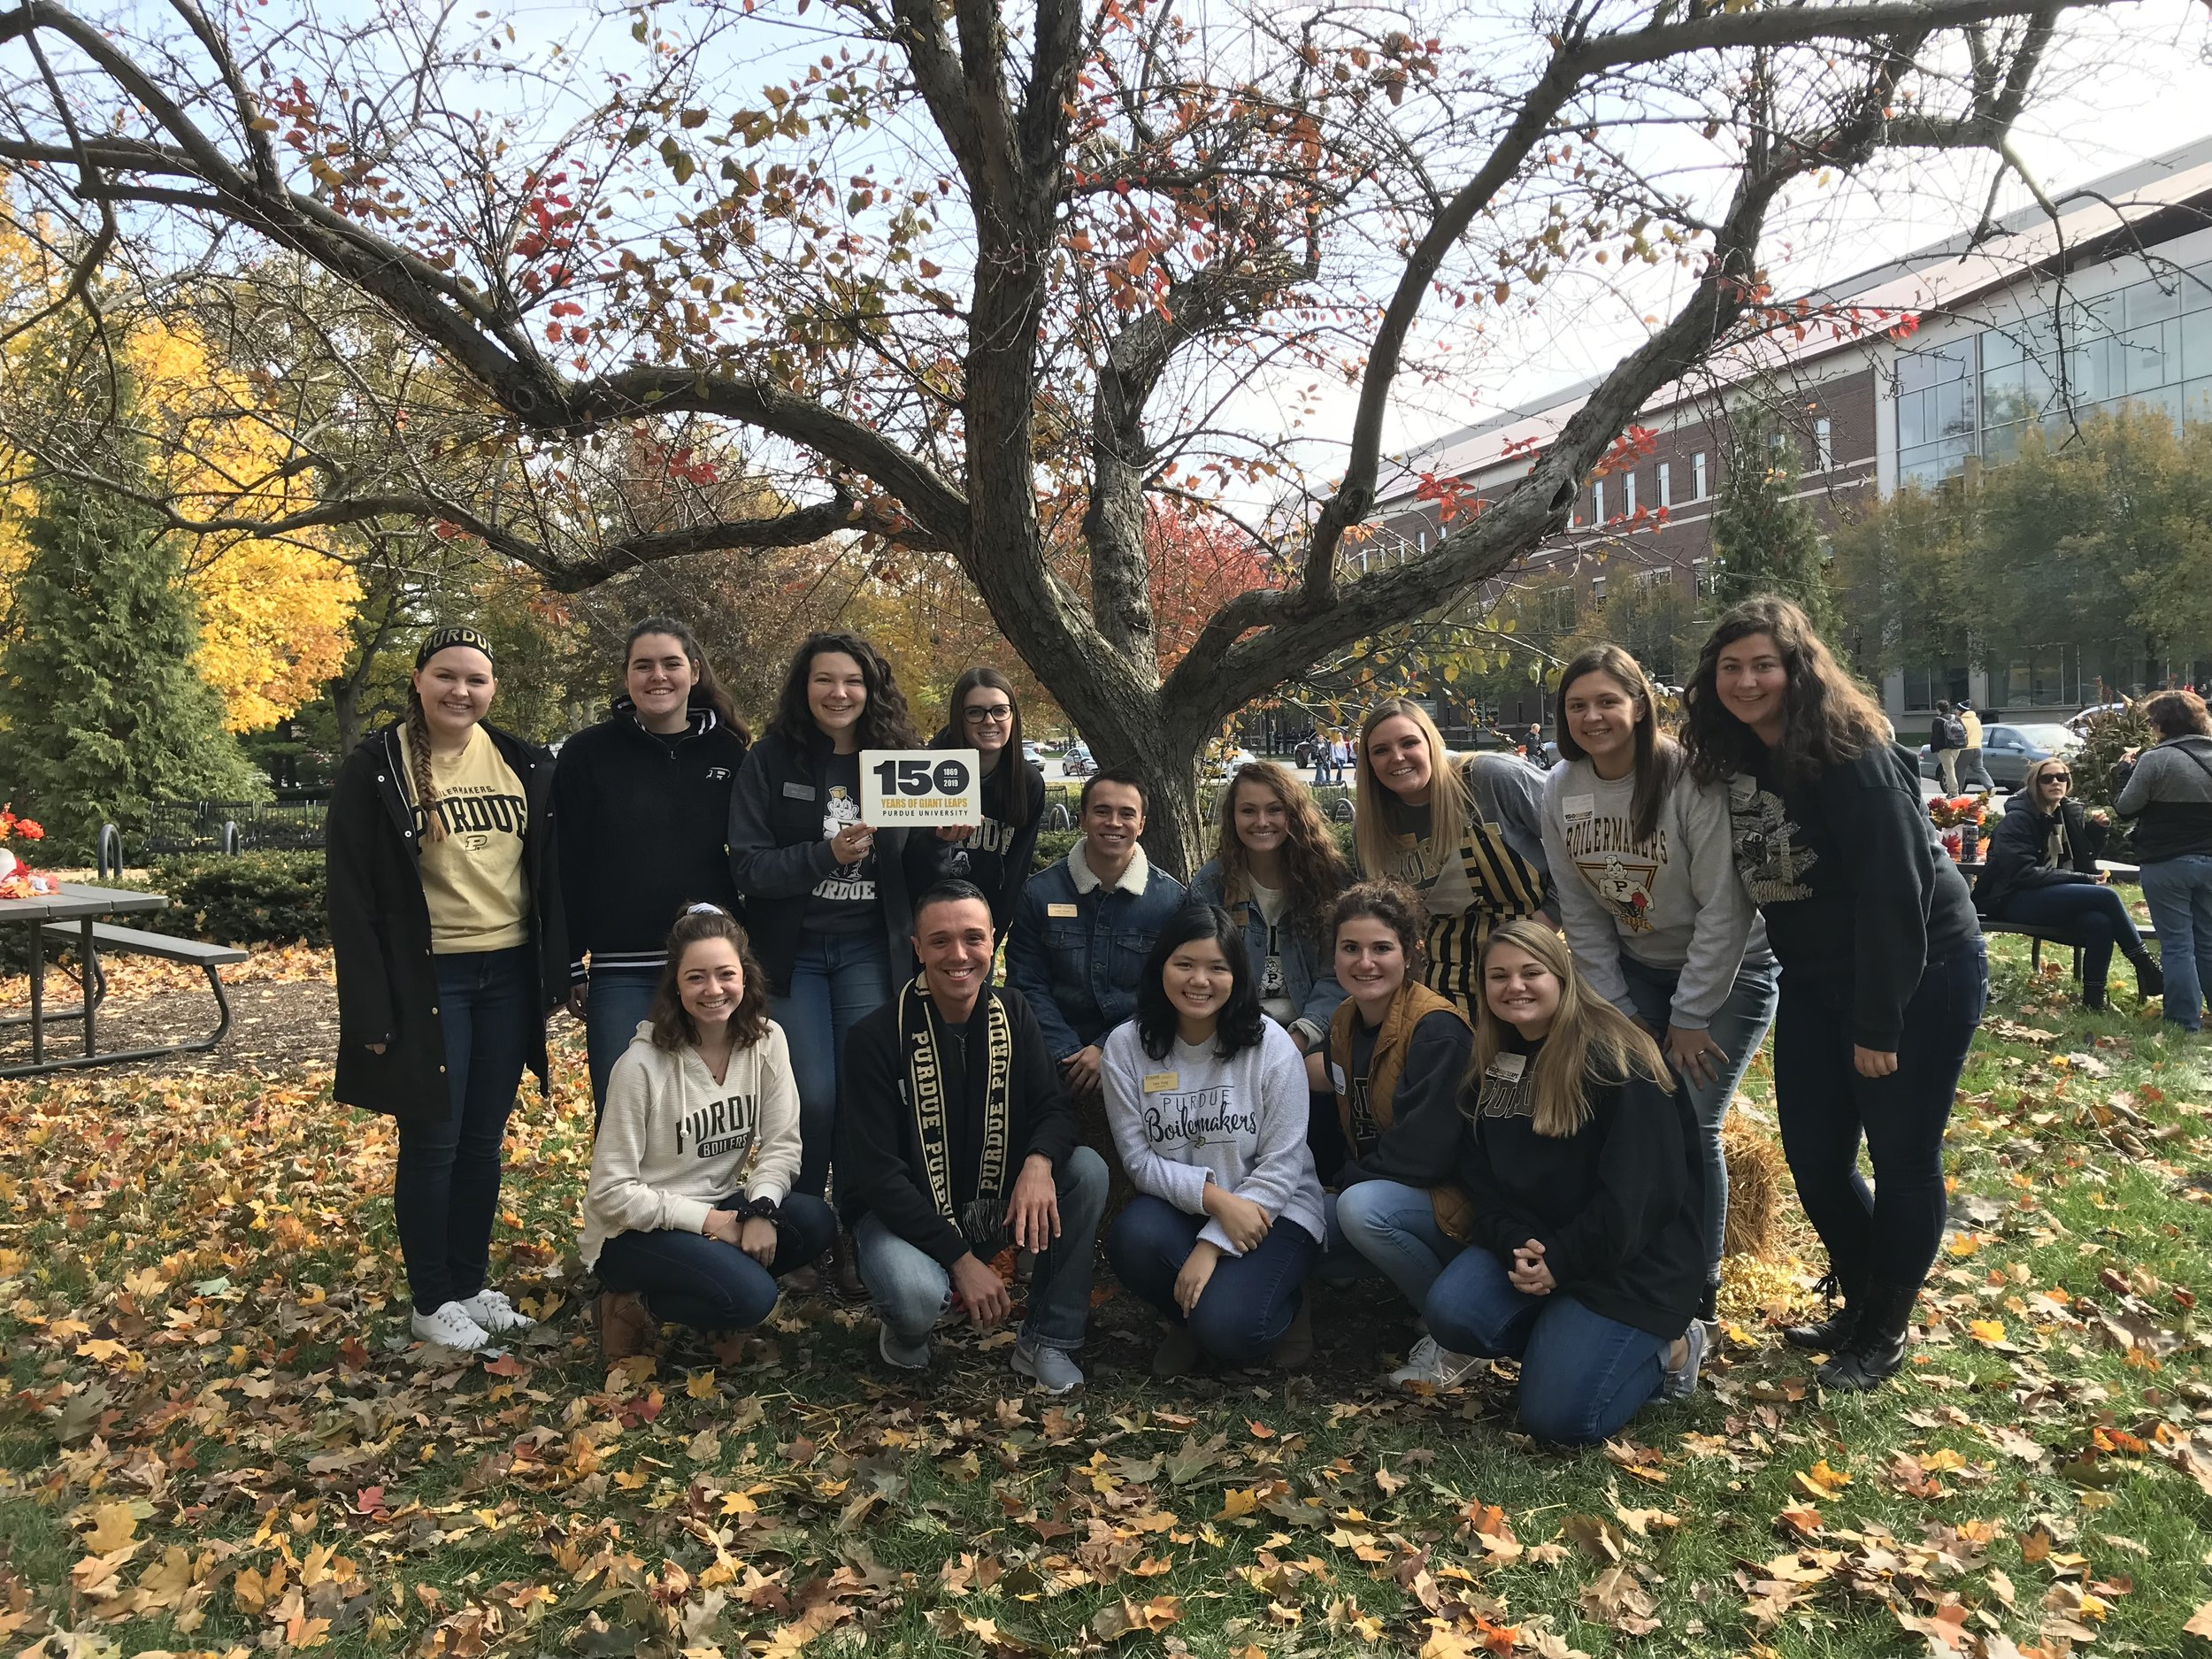 PCMA Hosts the College of Health and Human Sciences Family Weekend at Purdue University Annually